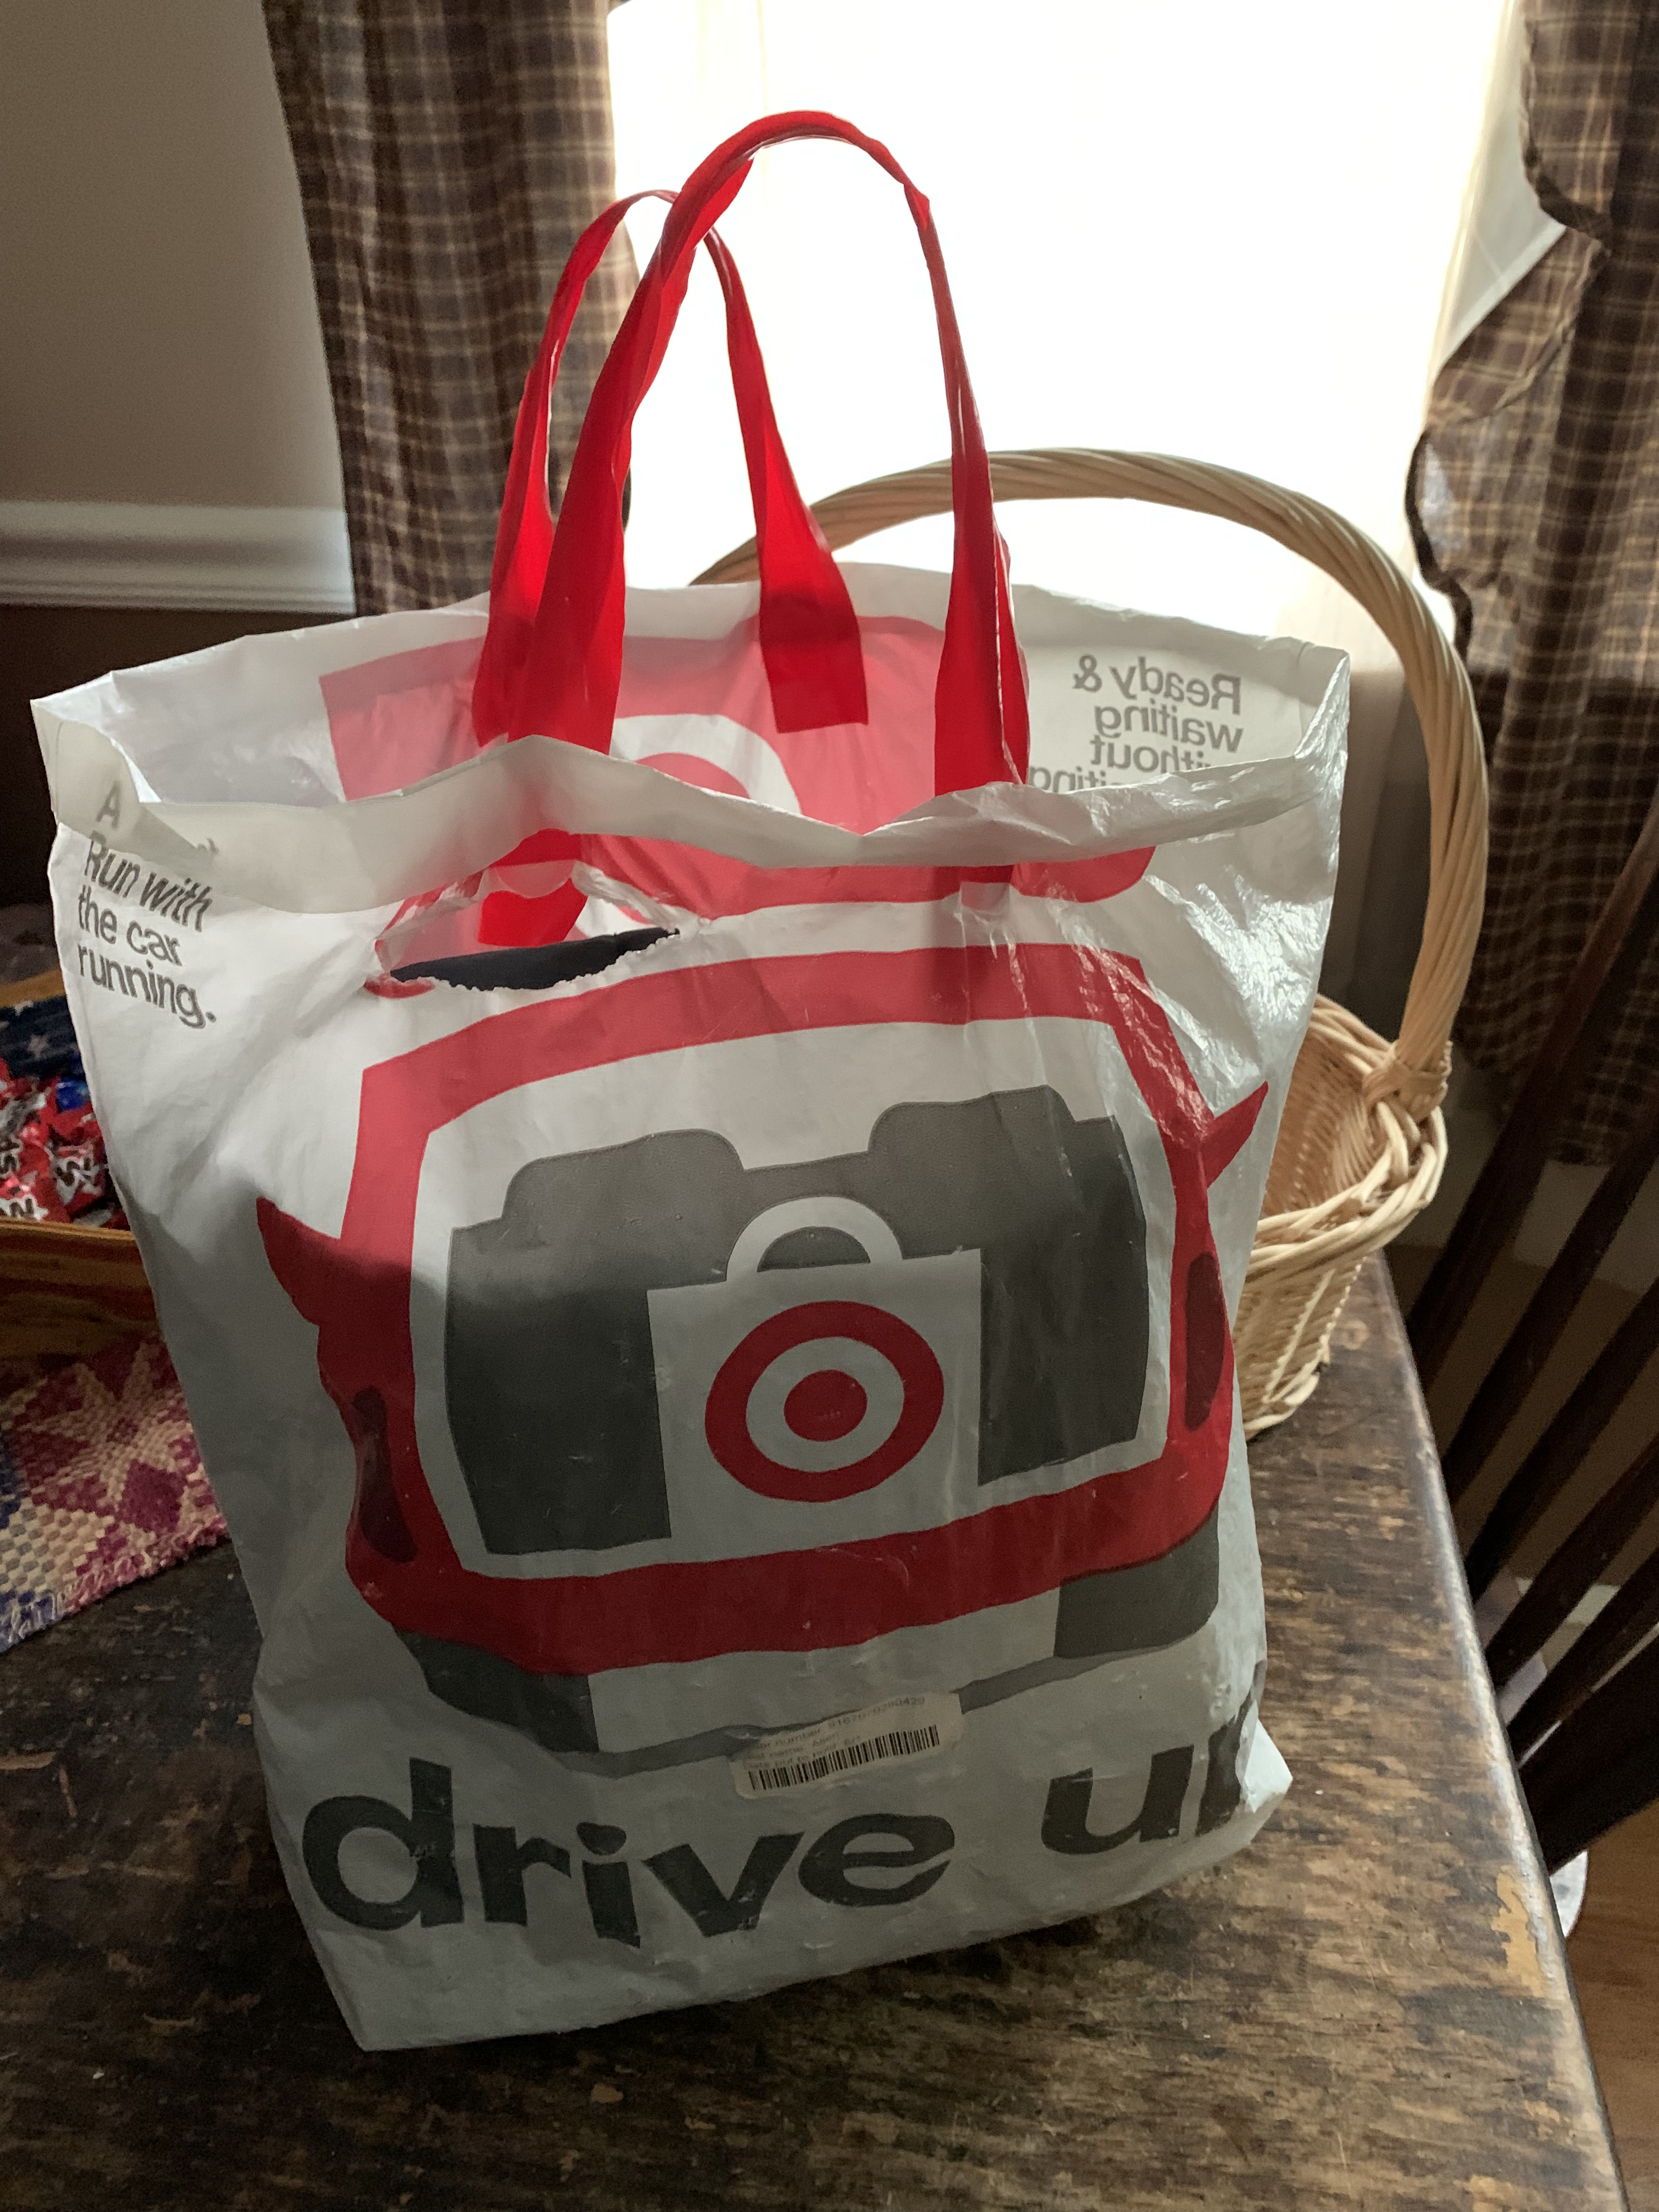 A Target Bag, worn with almost 18 months of use.